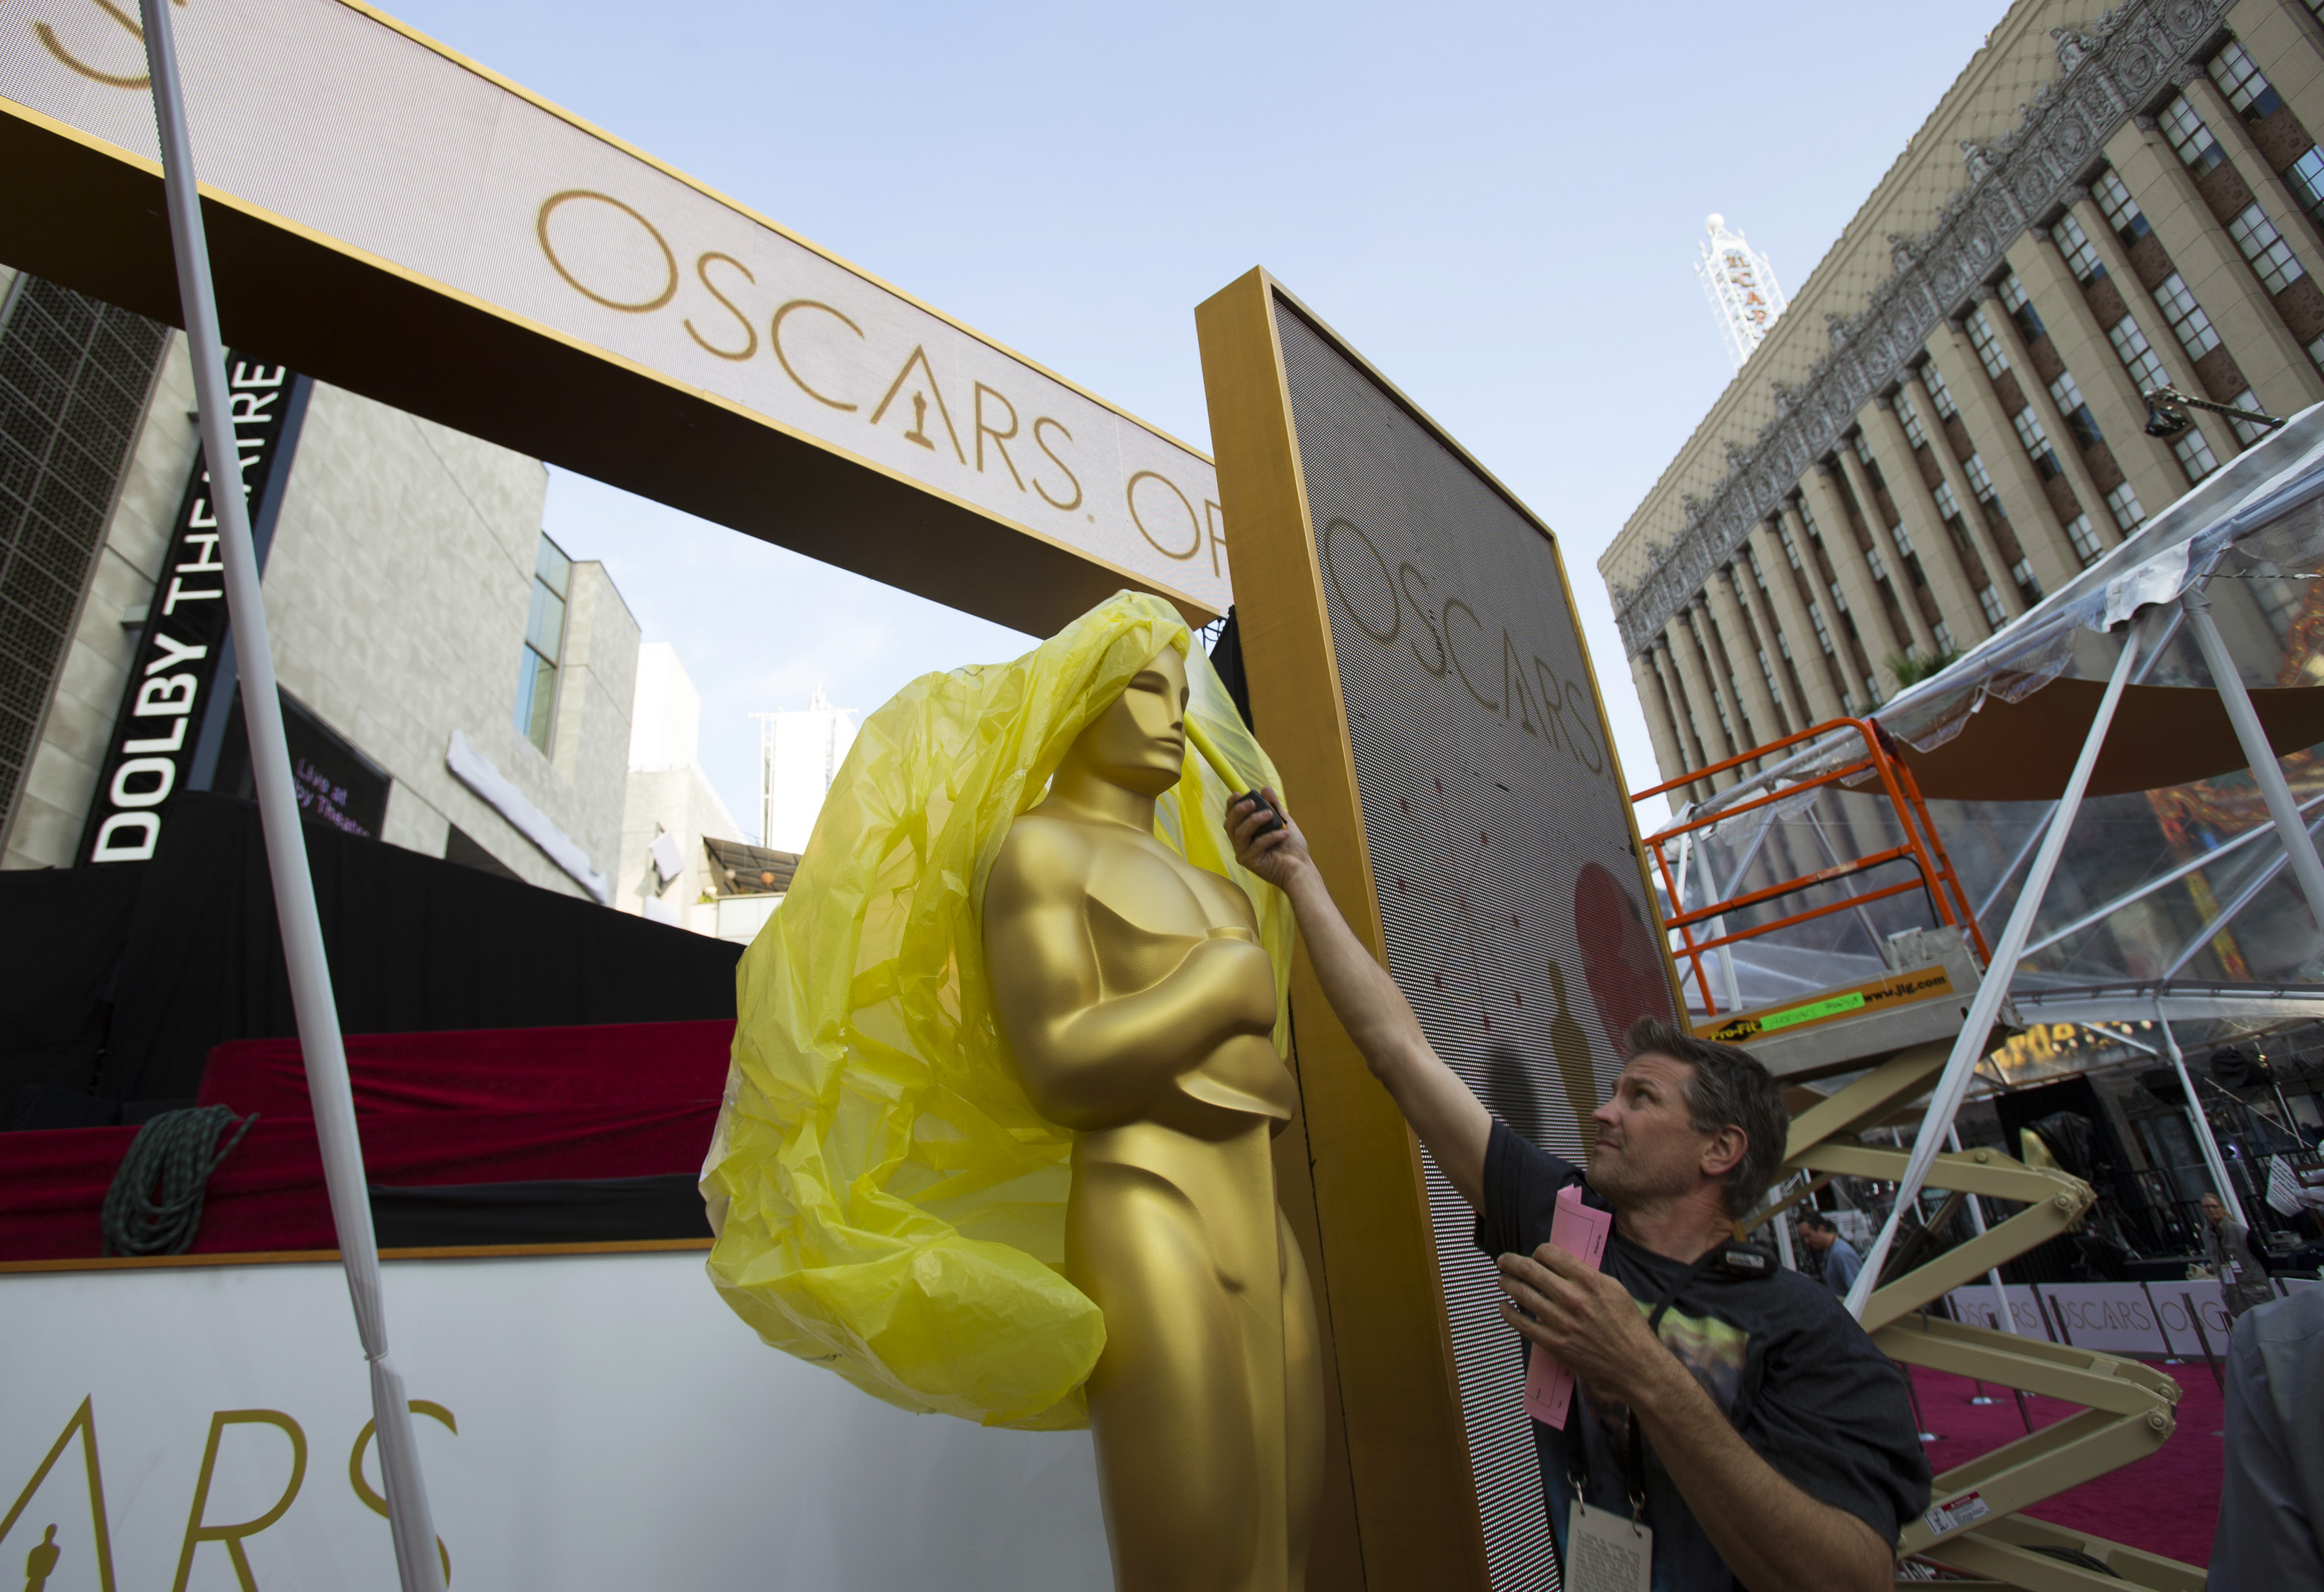 An Oscar statue is uncovered outside the Dolby Theater during preparations leading up to the 87th Academy Awards in Hollywood, California February 21, 2015. Photo by REUTERS/Mario Anzuoni